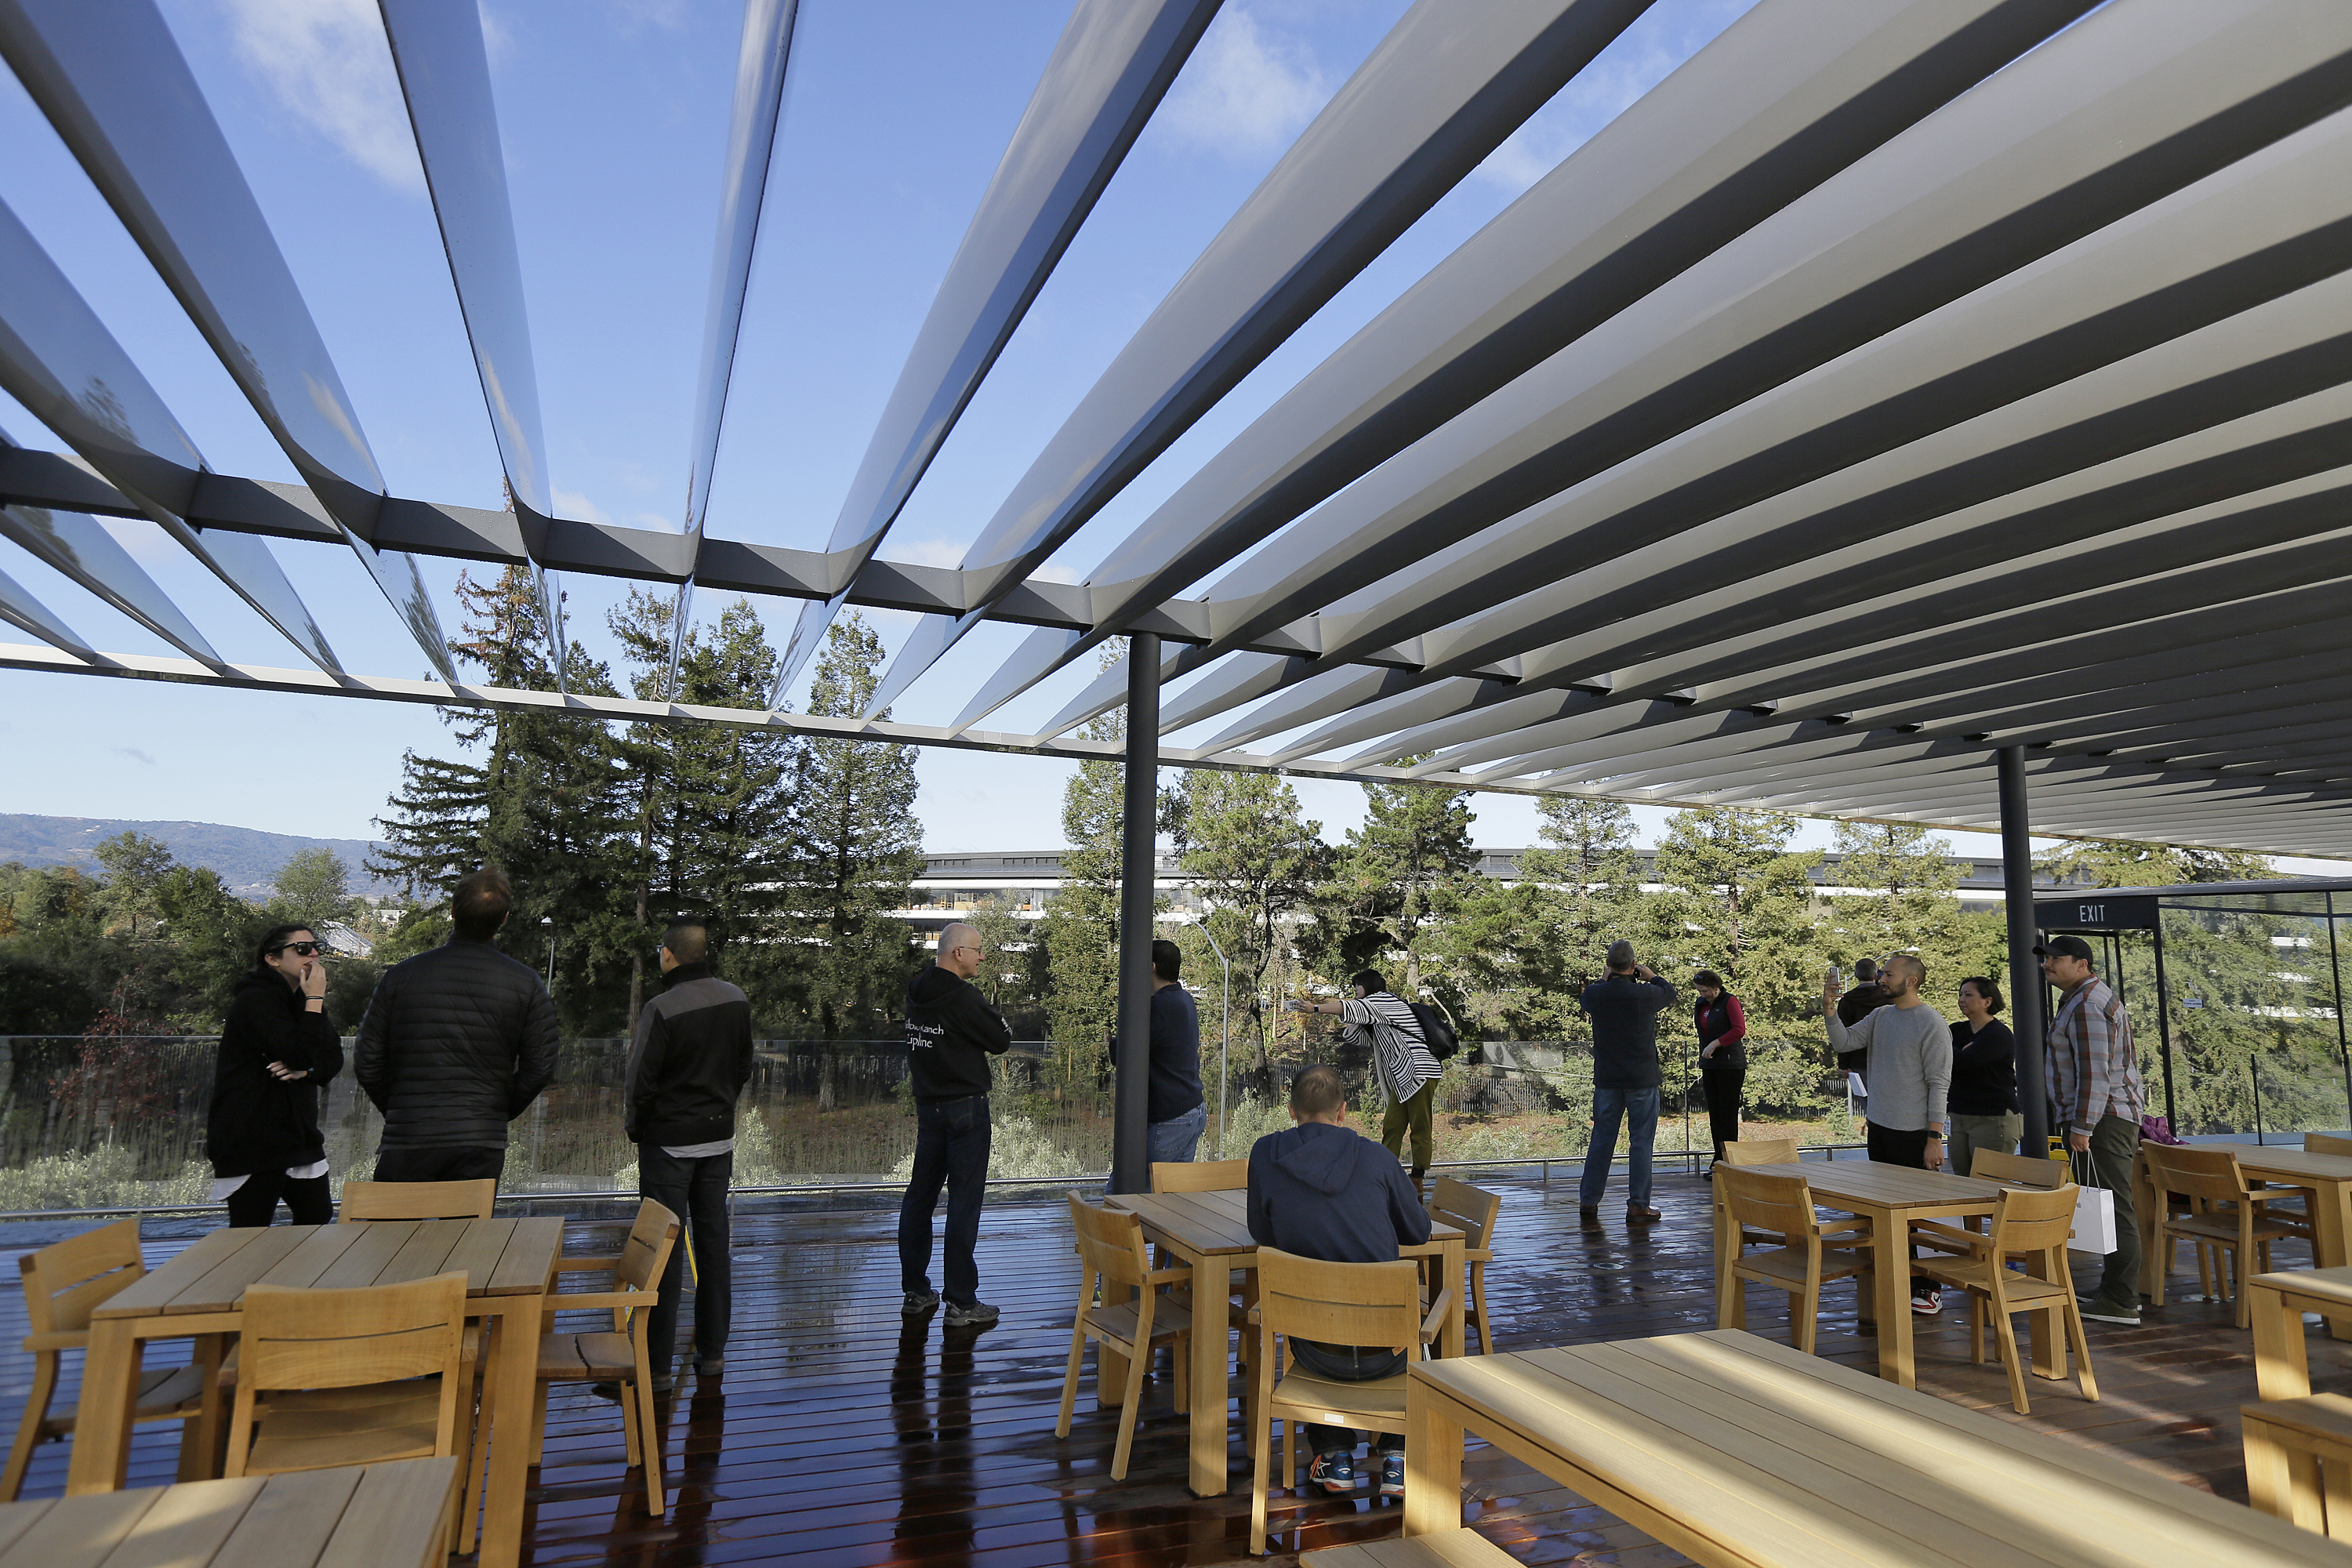 <div class='meta'><div class='origin-logo' data-origin='none'></div><span class='caption-text' data-credit='AP'>People stand on a rooftop terrace with the main building in the background during the grand opening of the Apple Park Visitor Center Friday, Nov. 17</span></div>